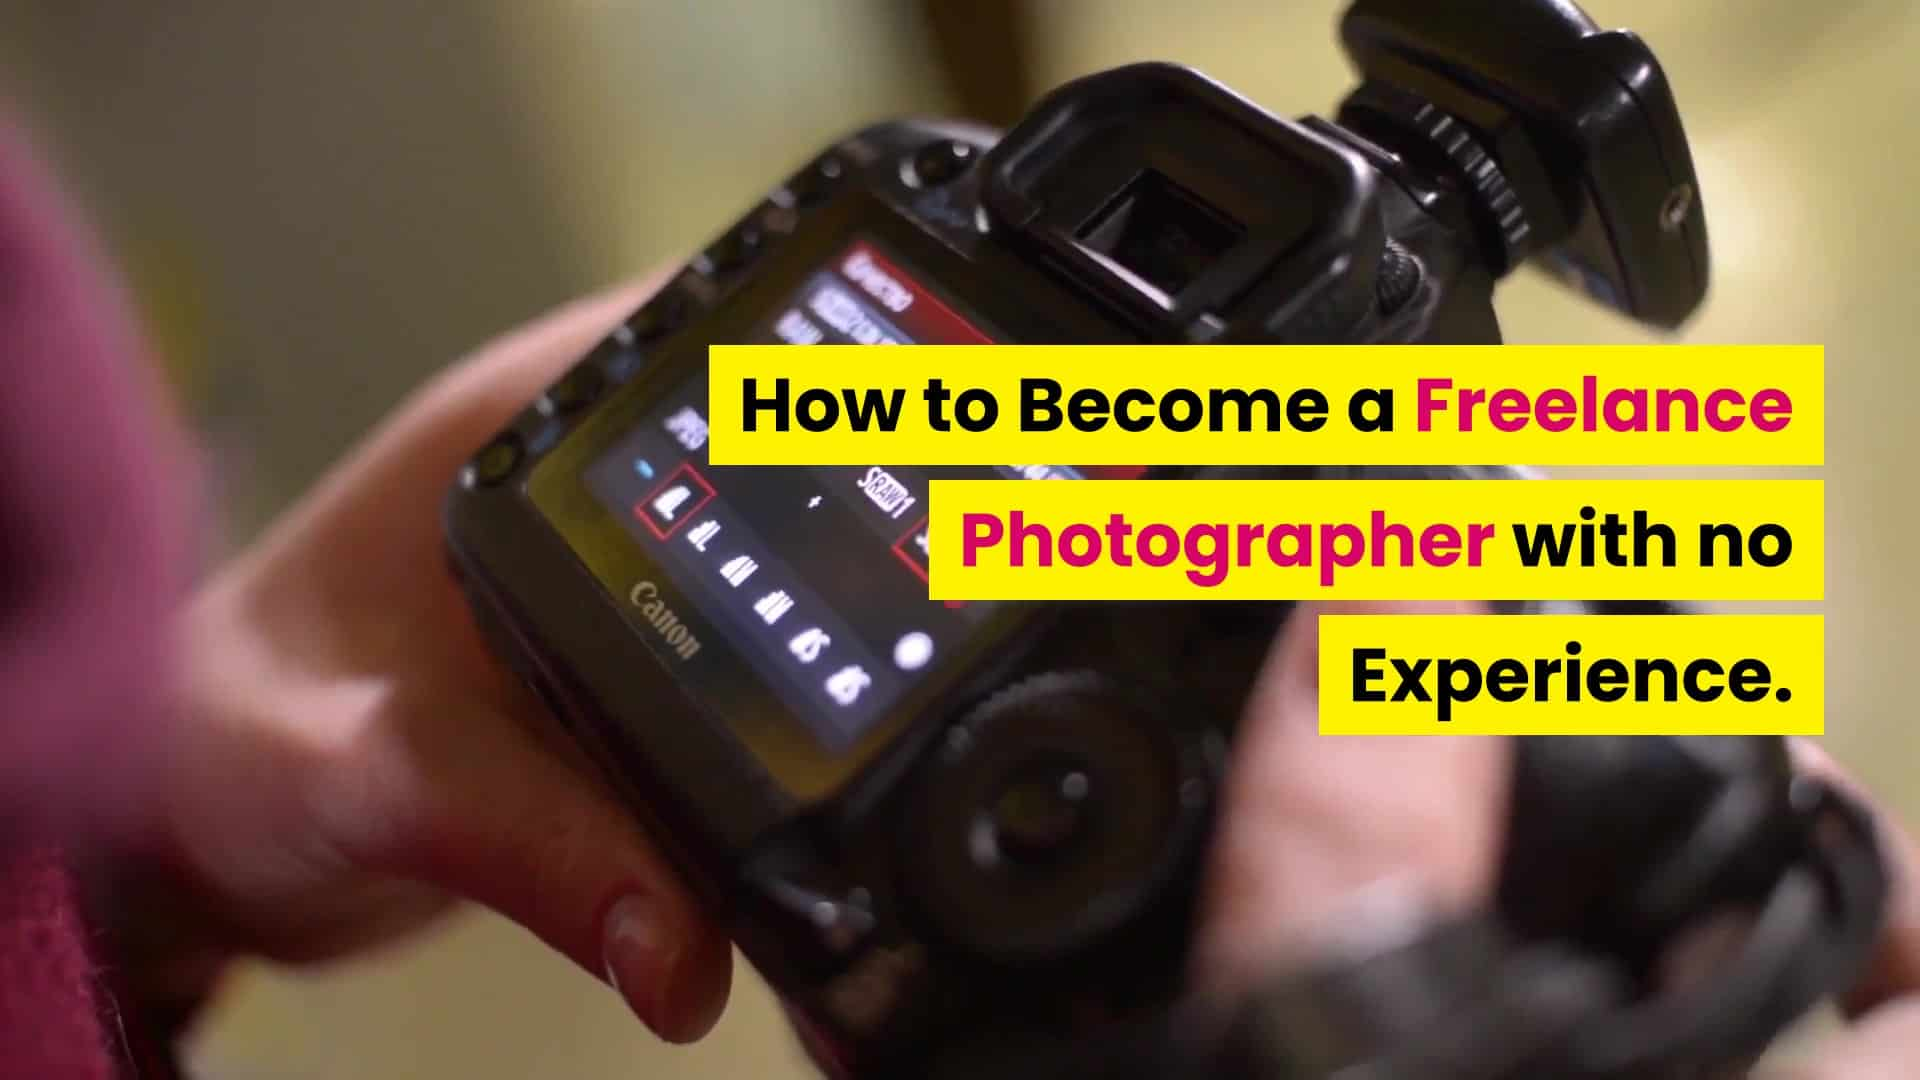 how to become a freelance photographer with no experience